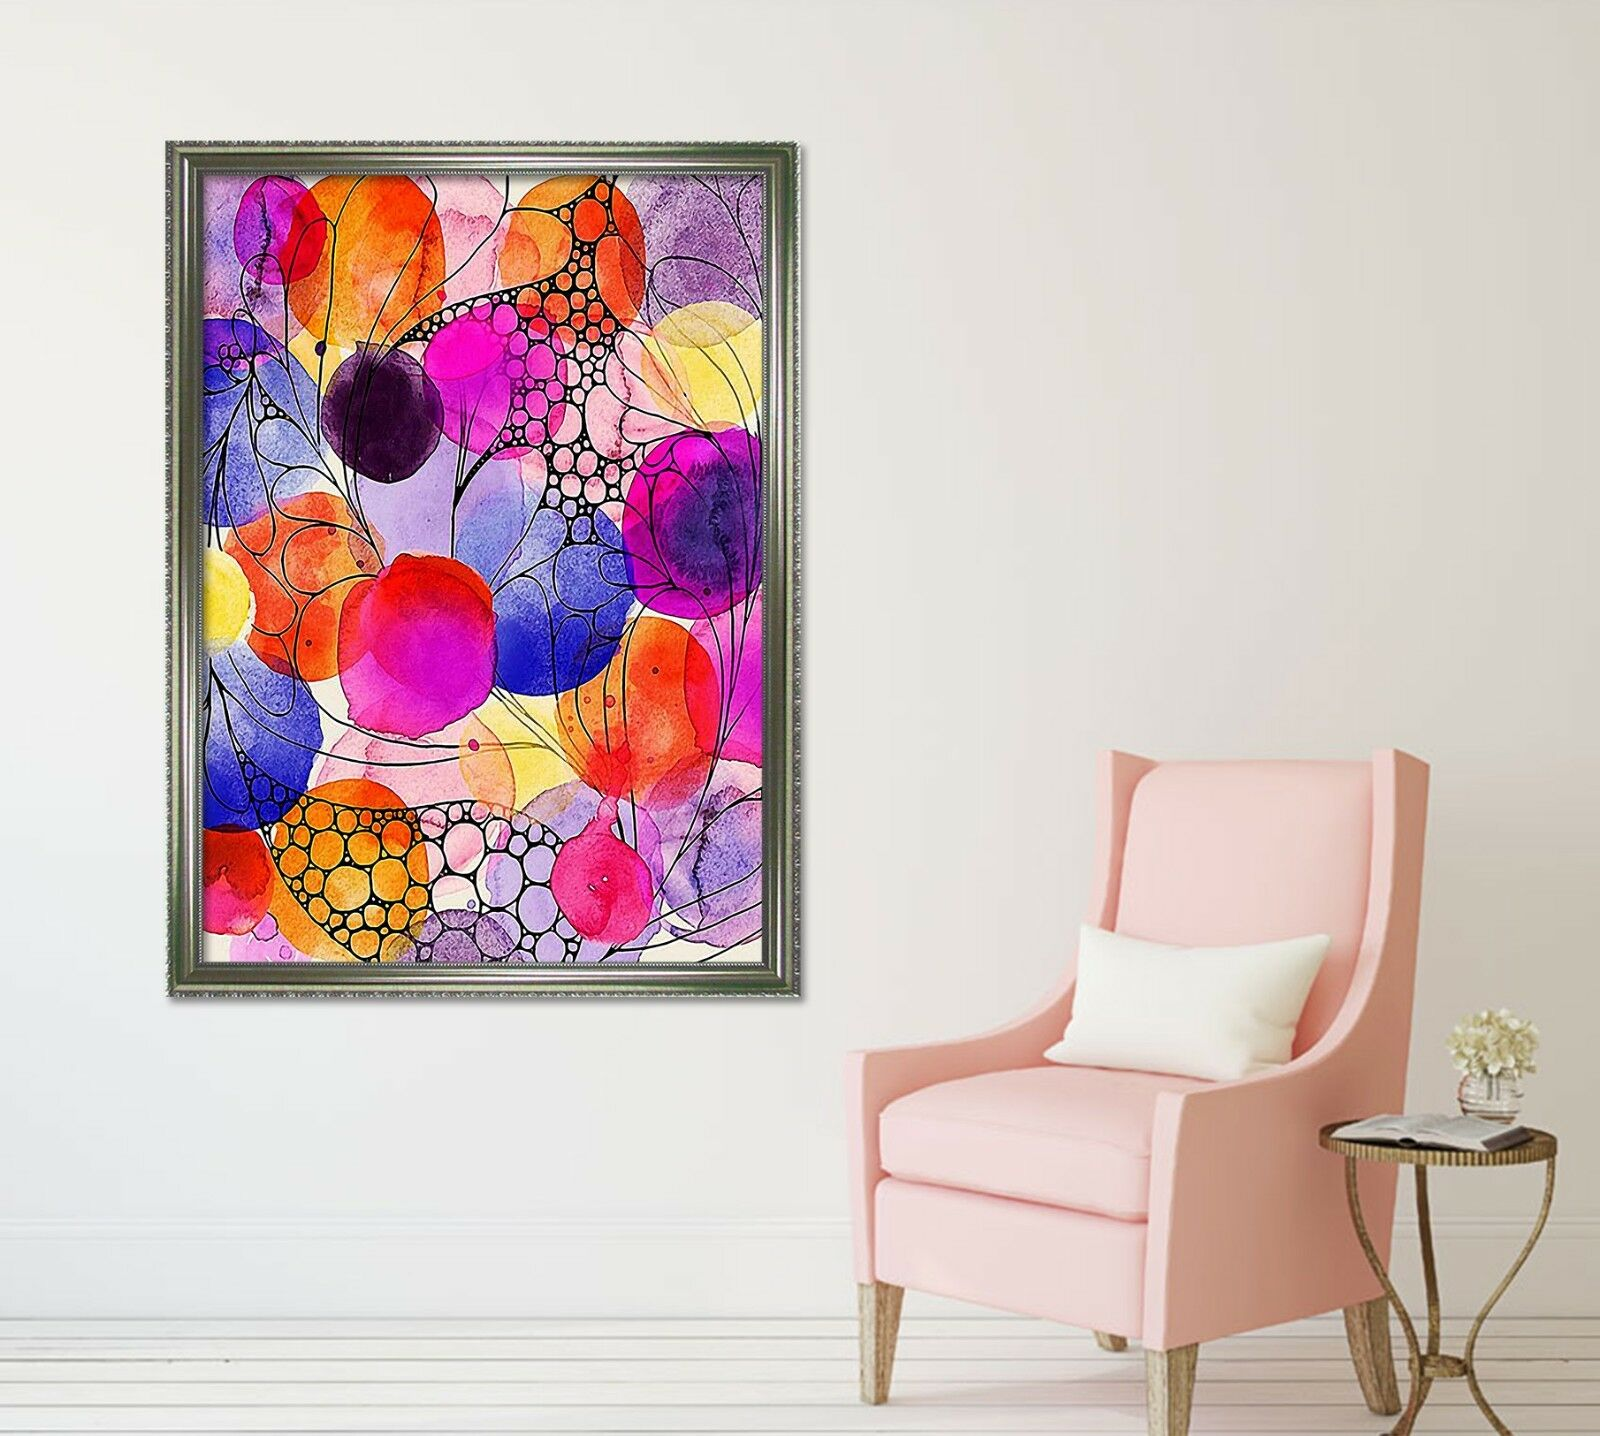 3D WaterFarbe Painting 2 Framed Poster Home Decor Print Painting Art WALLPAPER